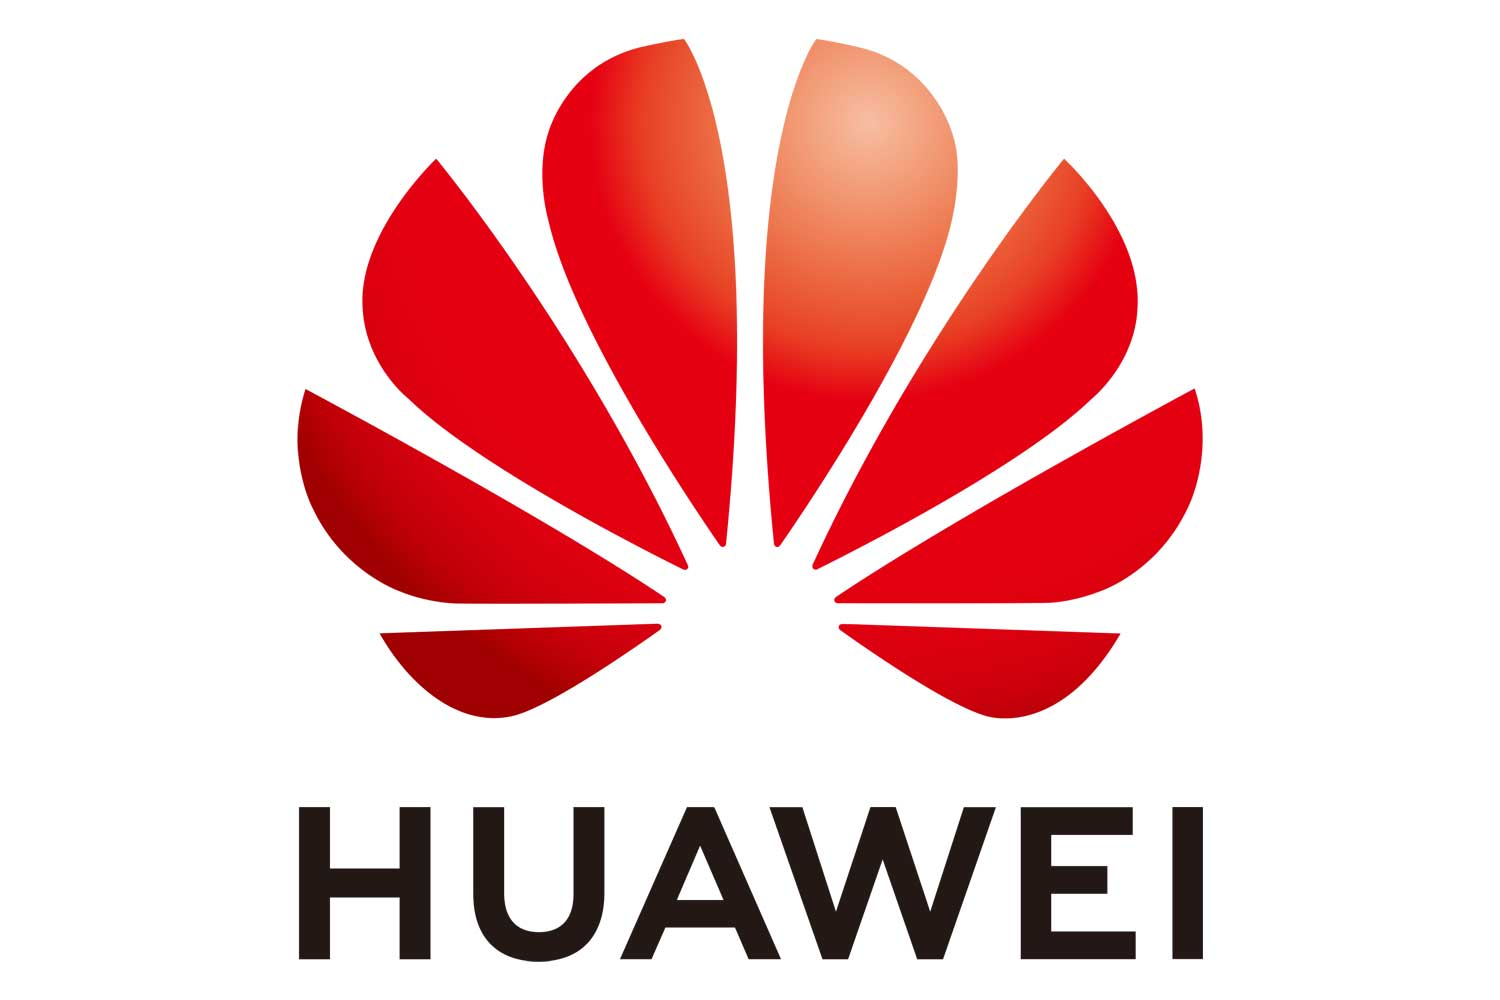 KBTG and Huawei sign MoU to enhance technologies in support of digital transformation